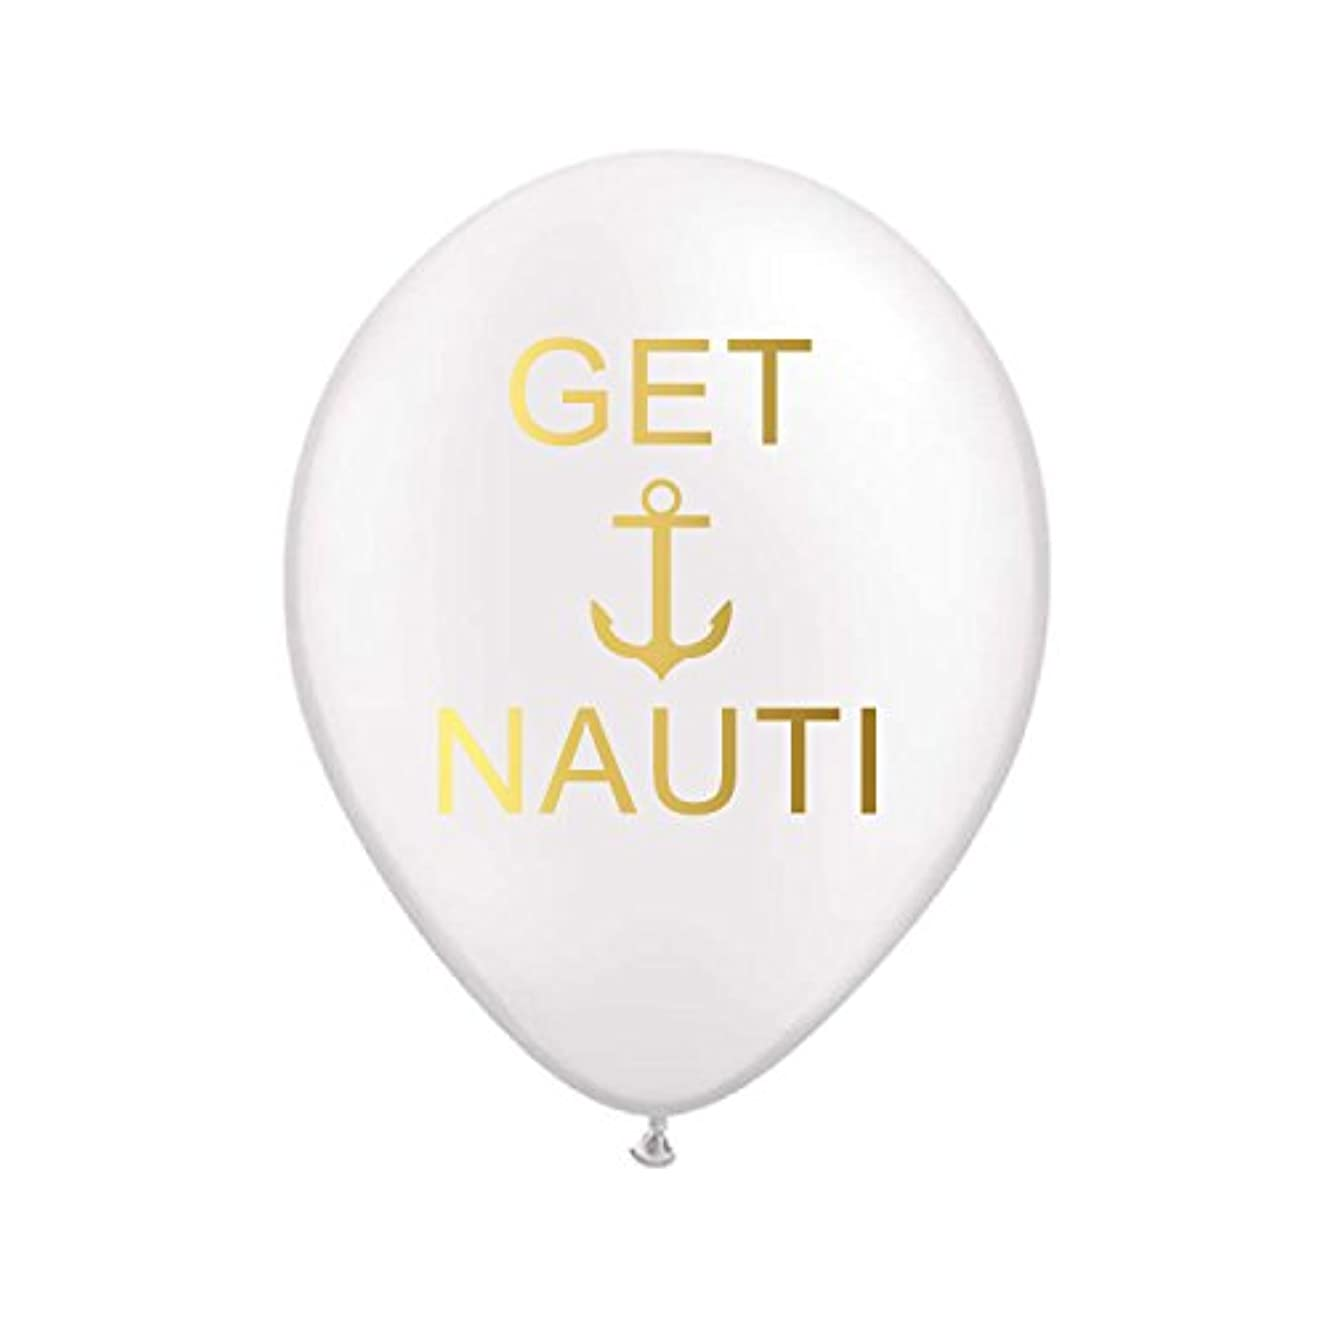 Get Nauti Balloons in White and Gold for a Nautical Bachelorette Party, Nautical Party Decorations, Nautical Party Balloons, Set of 3, Anchor, Sailor Party, Drop Anchor, Nautical Balloons